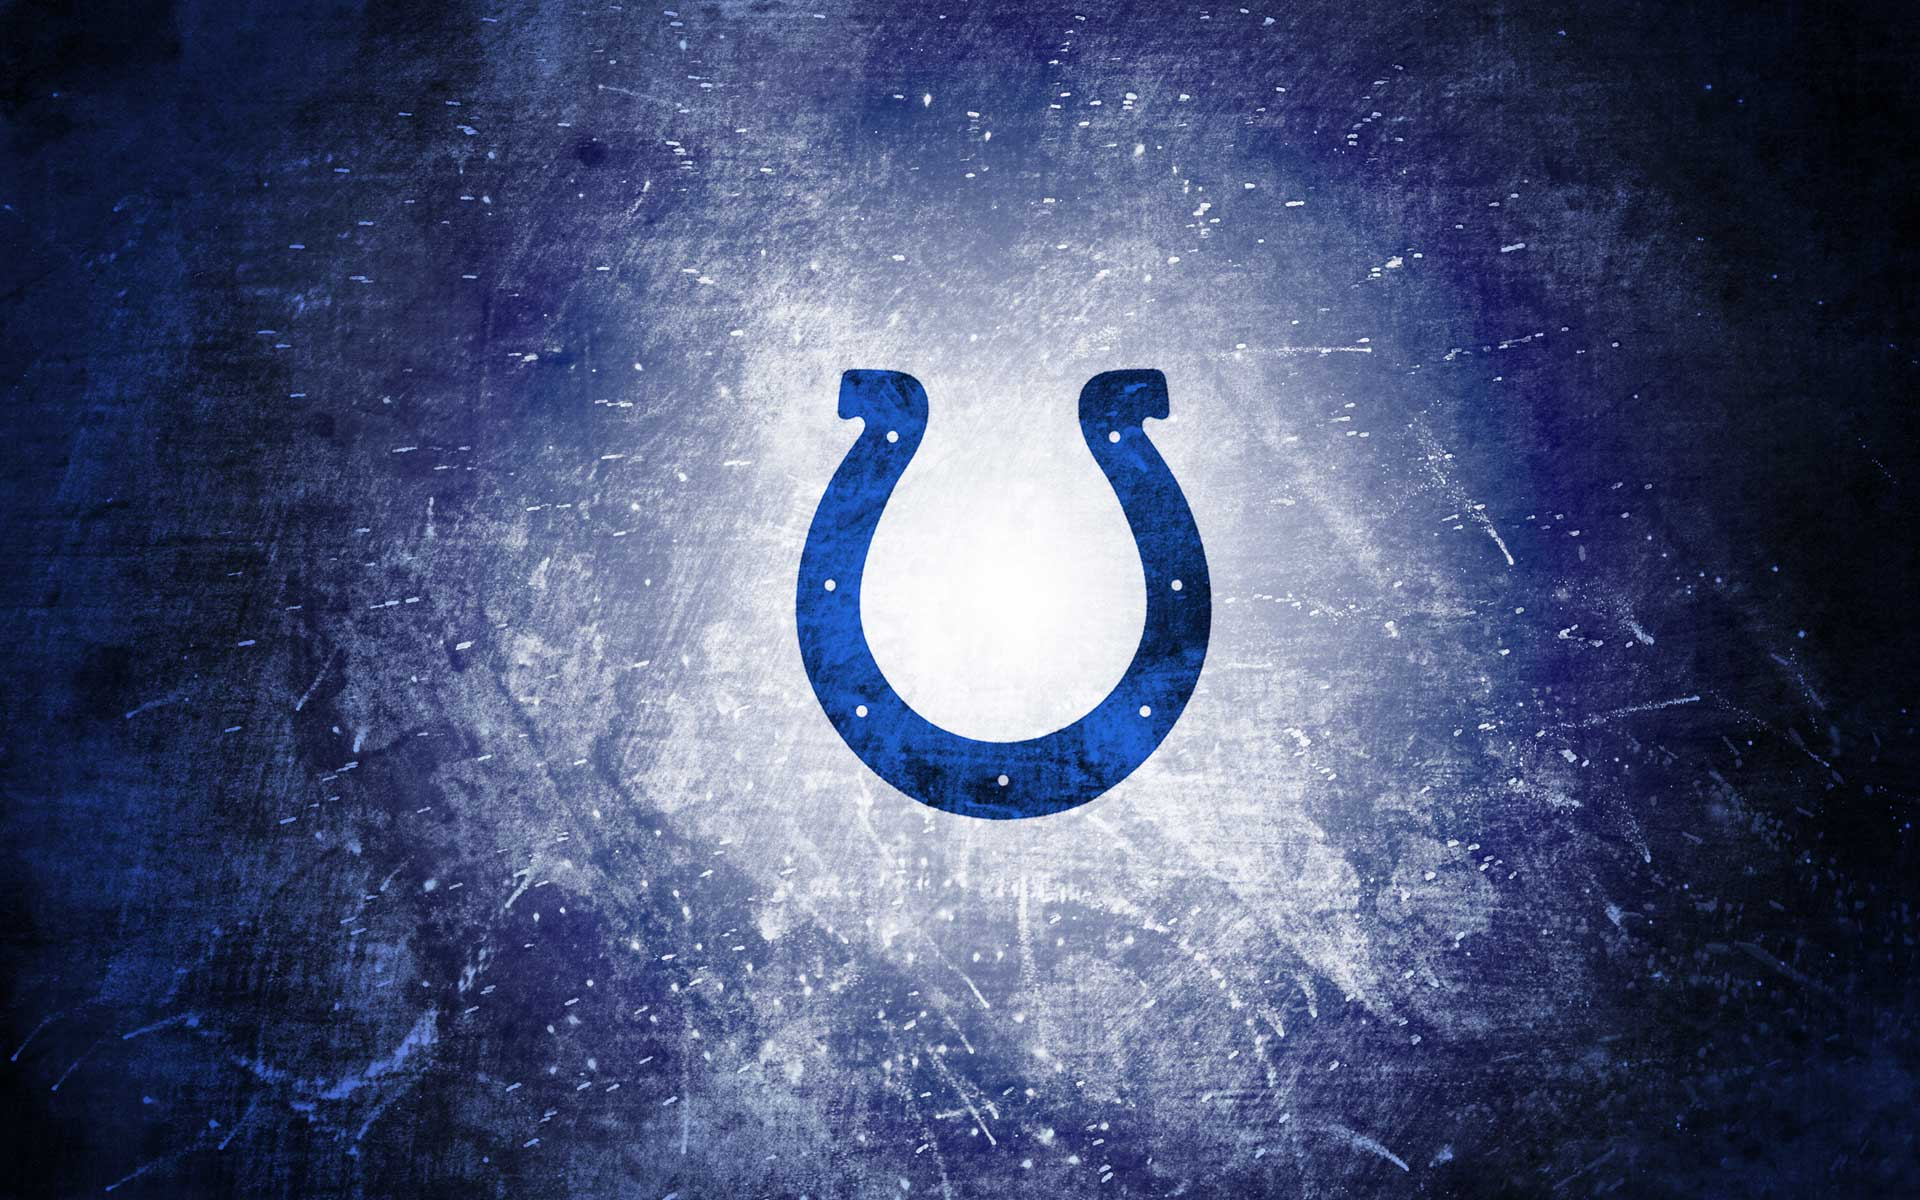 Free Indianapolis Colts desktop image | Indianapolis Colts wallpapers